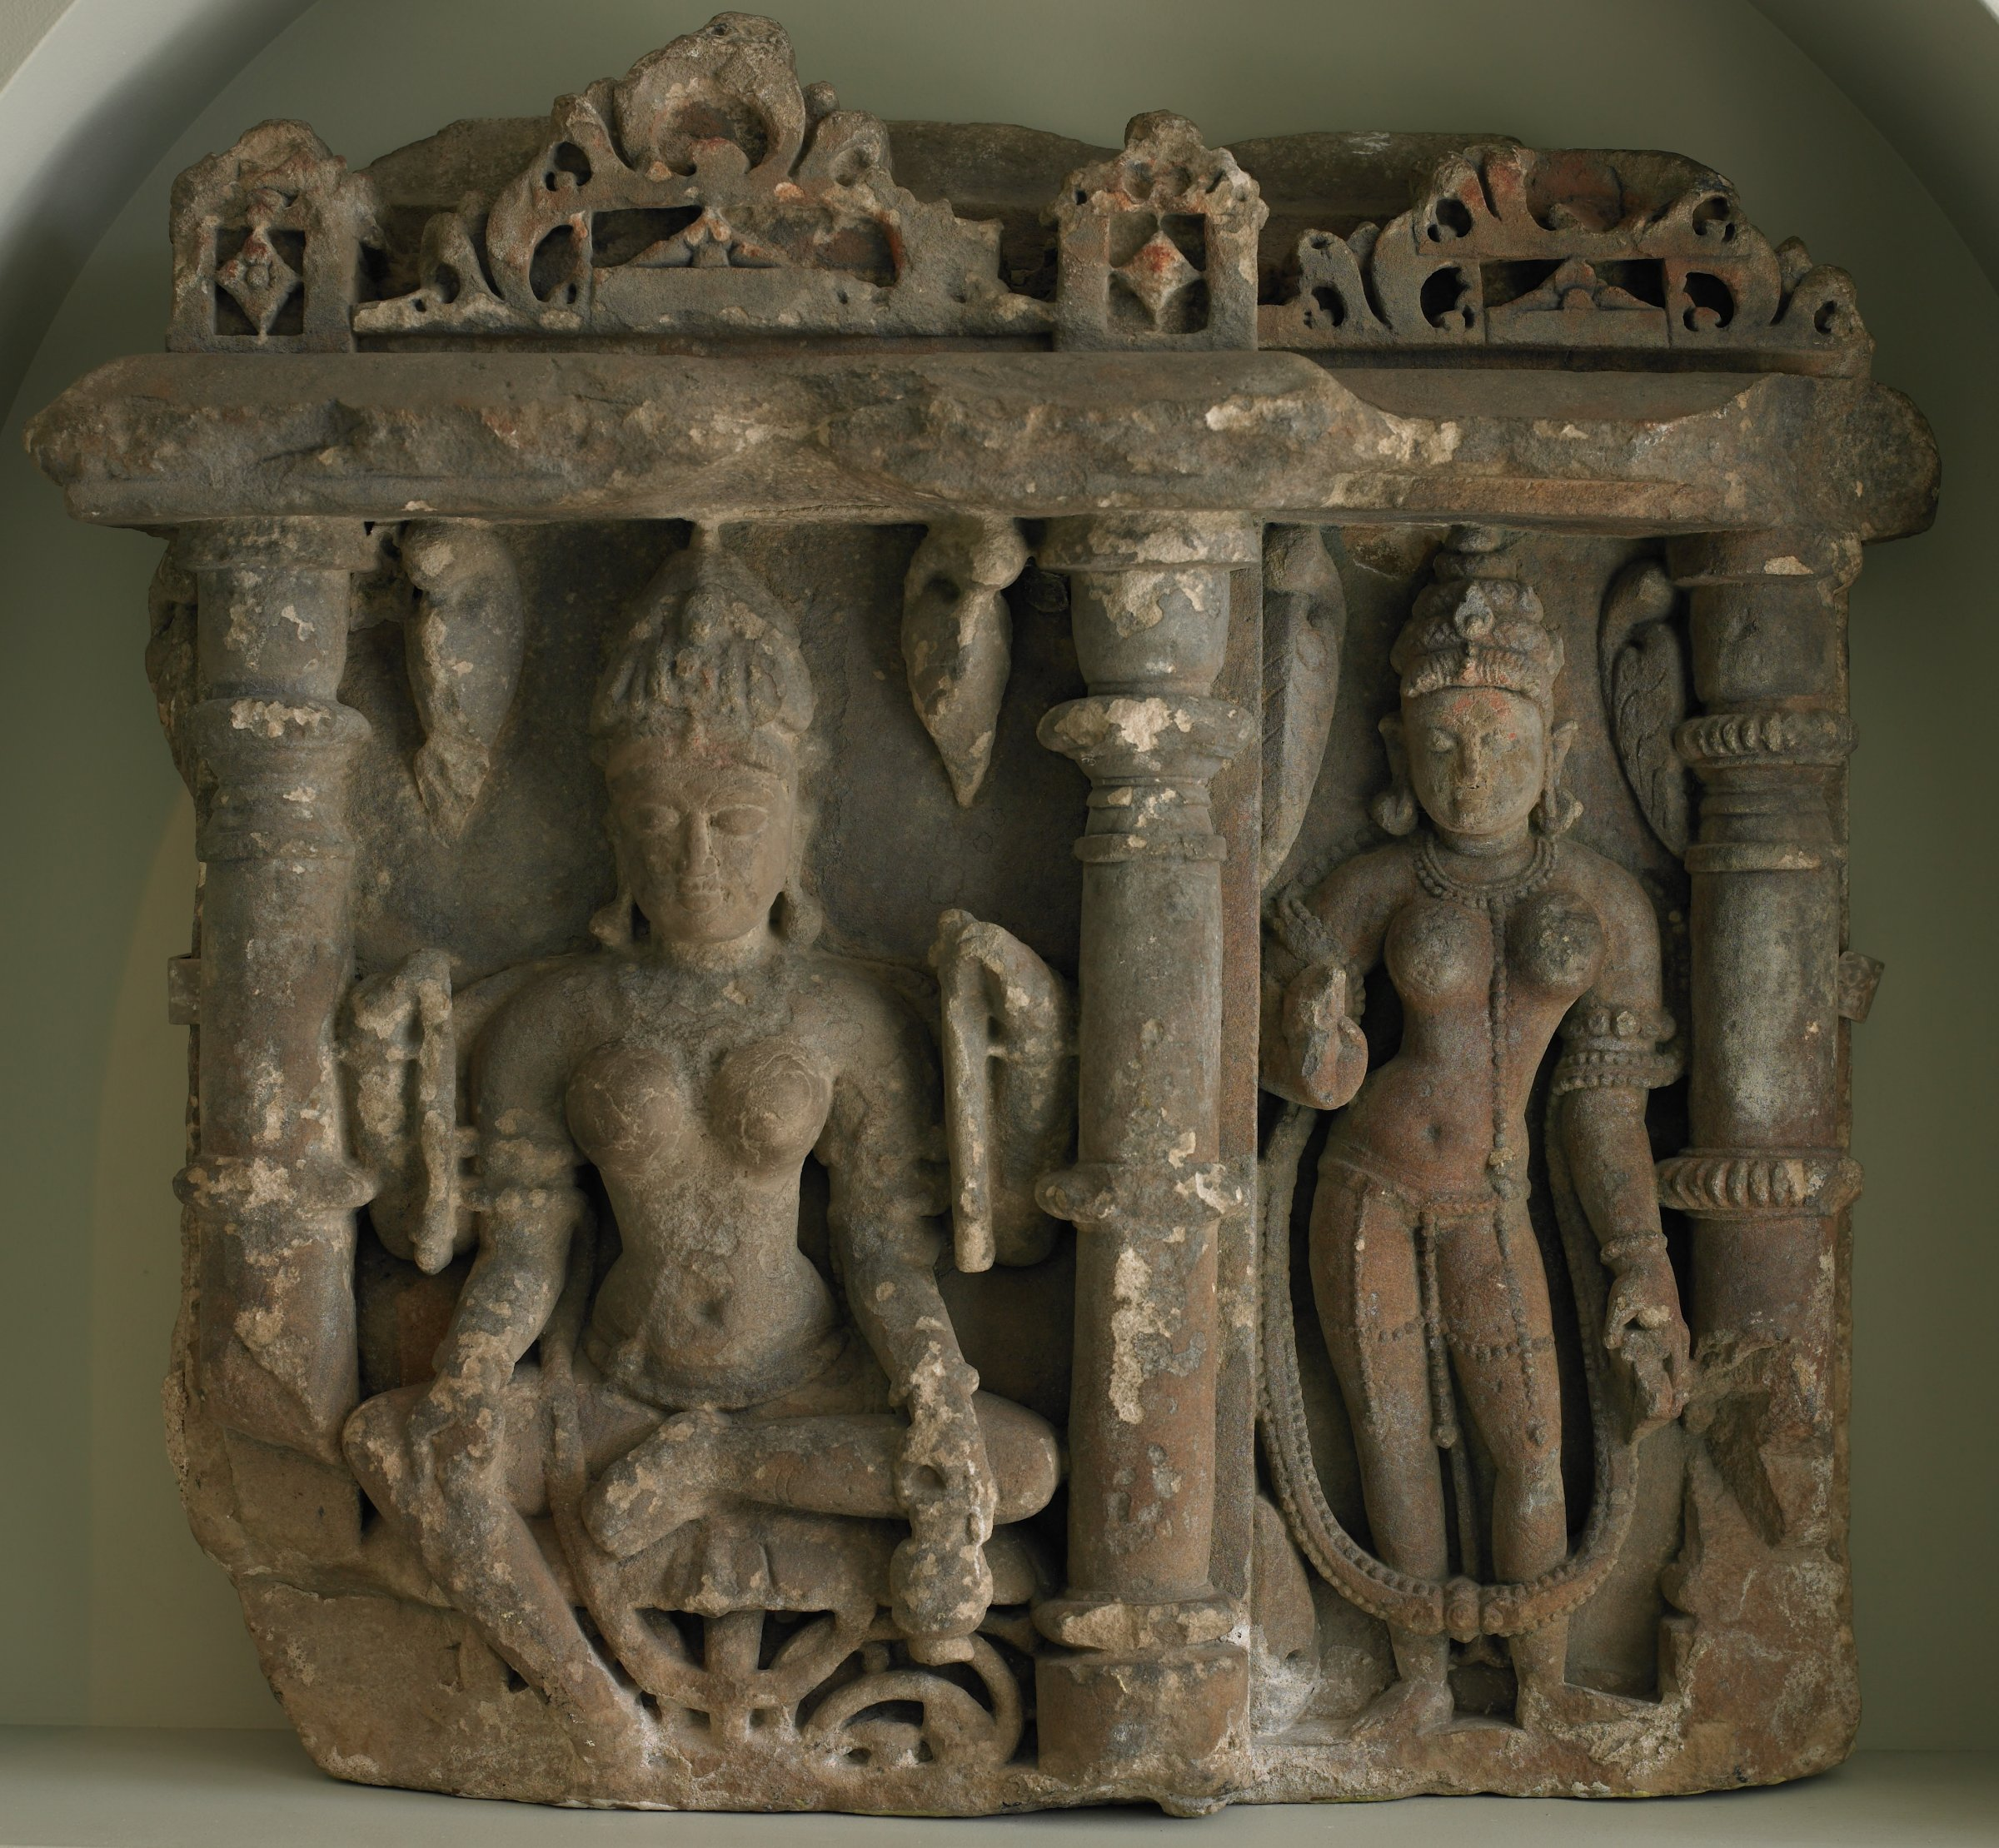 One four-armed Goddess seated upon a lotus leaf with one leg pendant, hodling a water pot in lowered proper left hand and one standing goddess each in an architectural niches flanked by columns ornamented with amalaka fruit underneath moon windows (Chandrasala)